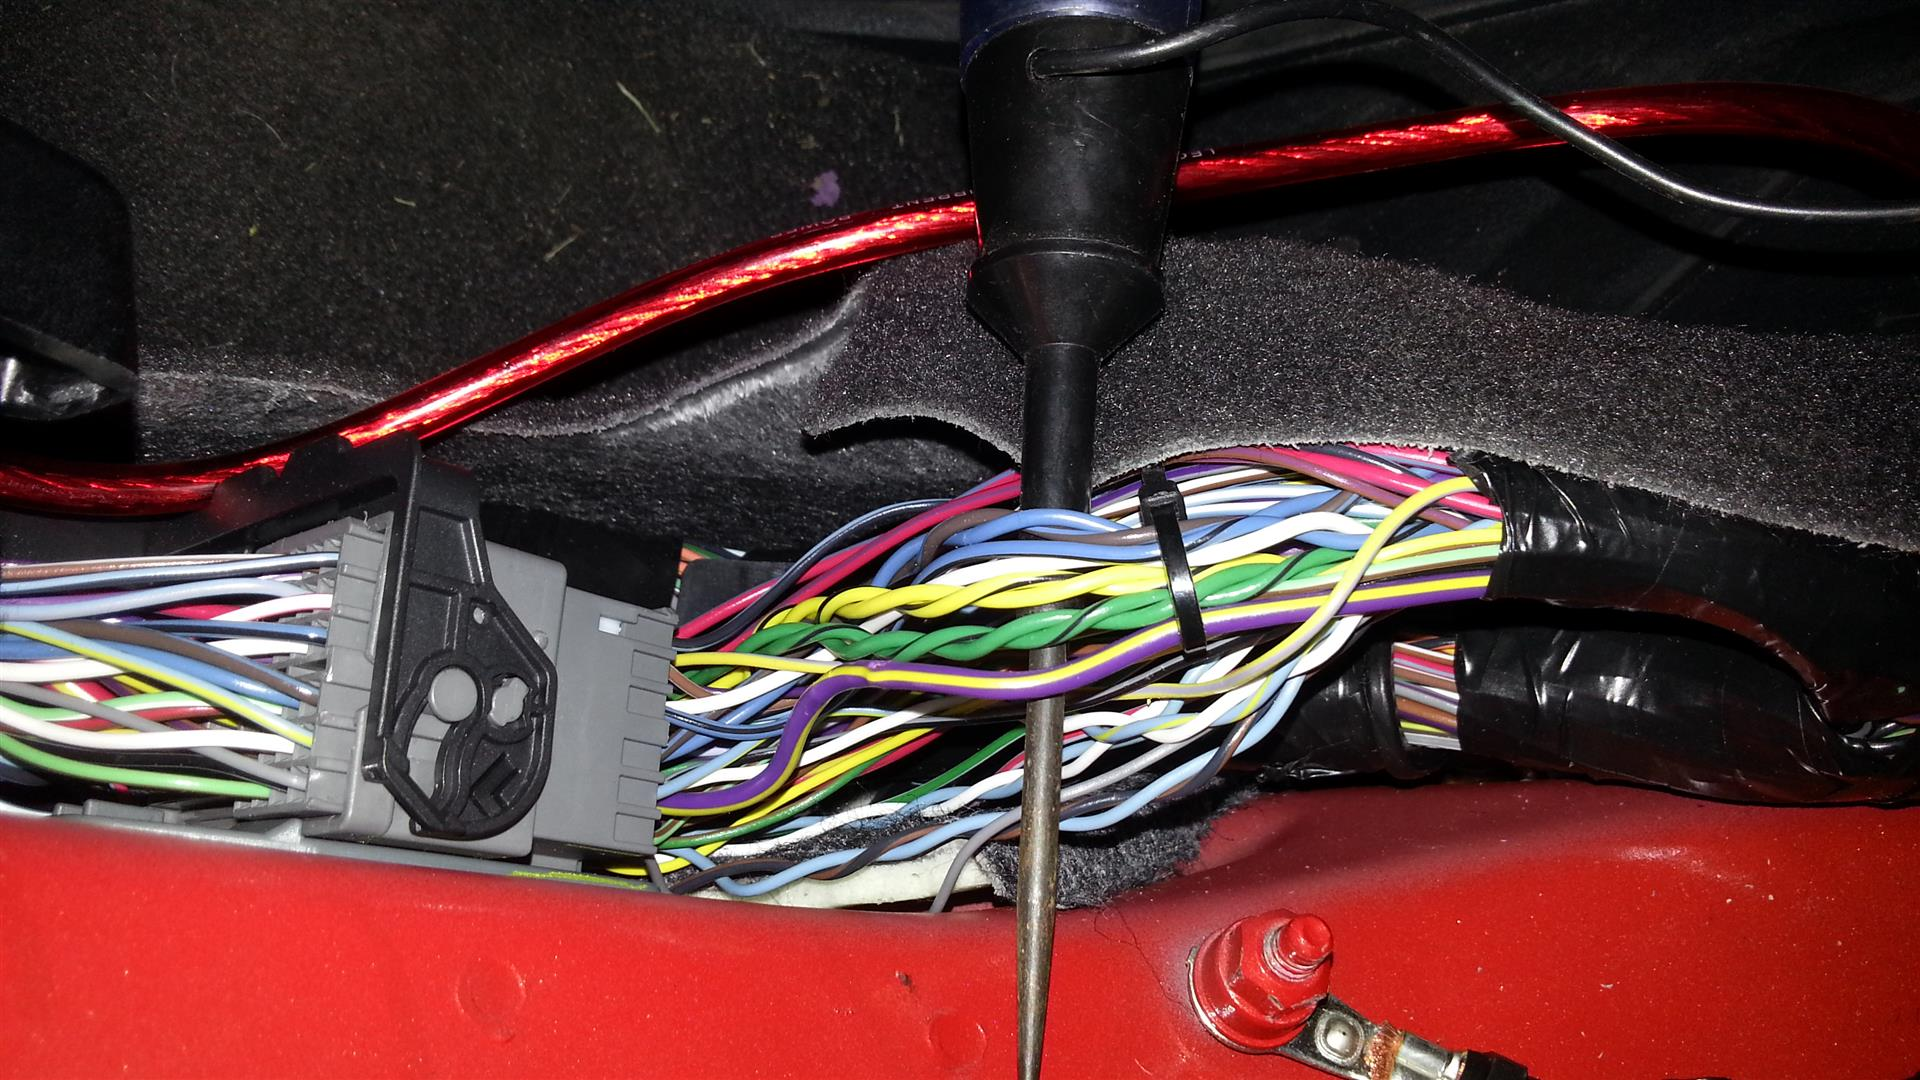 sonicstereo09 speaker wire color codes chevy sonic owners forum Chevrolet Silverado Radio Wiring Diagram at readyjetset.co